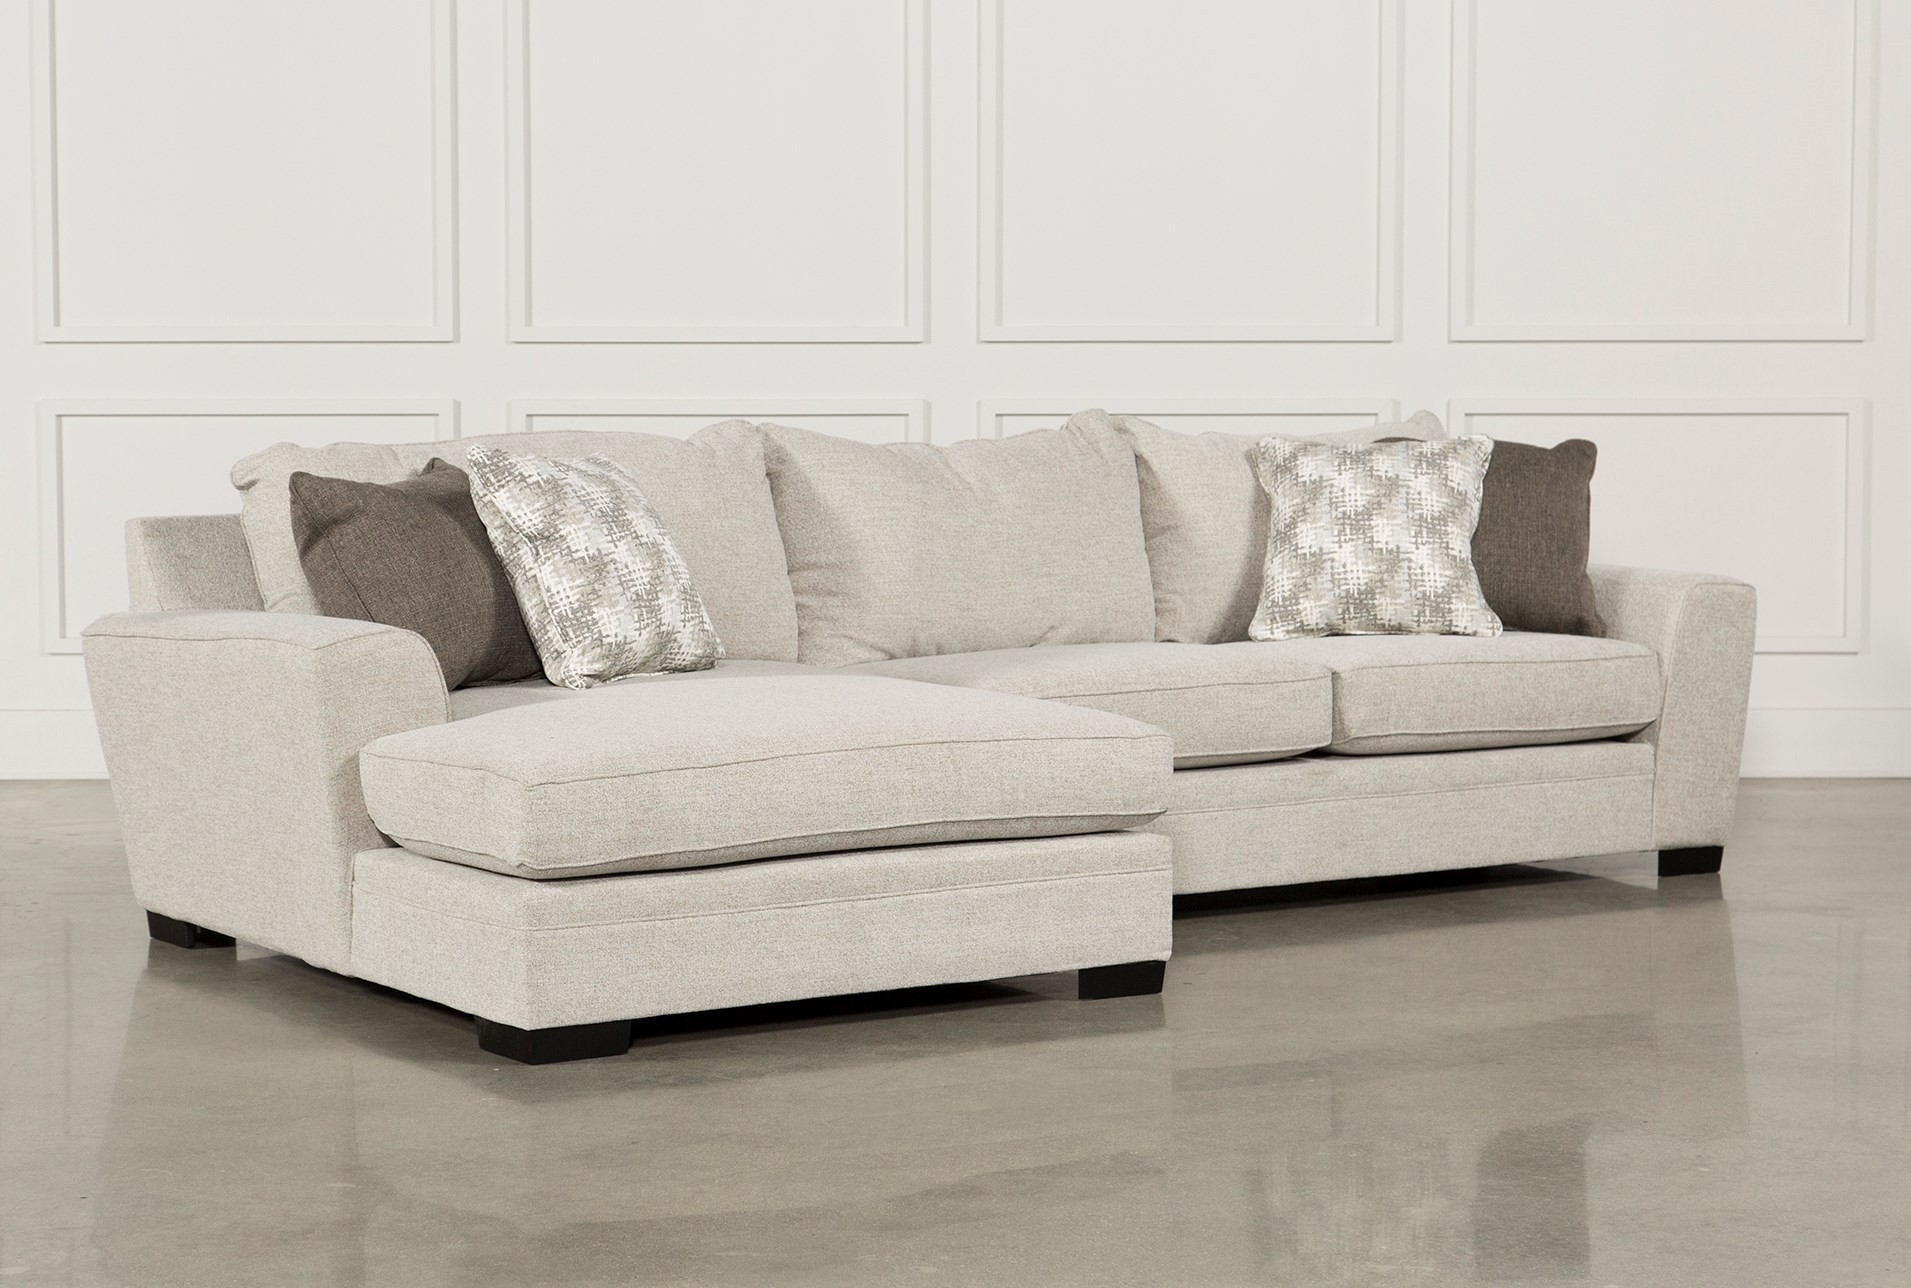 Living Spaces Sectional Couches Josephine 2 Piece W Raf Sofa 222882 With Regard To Josephine 2 Piece Sectionals With Raf Sofa (View 11 of 25)